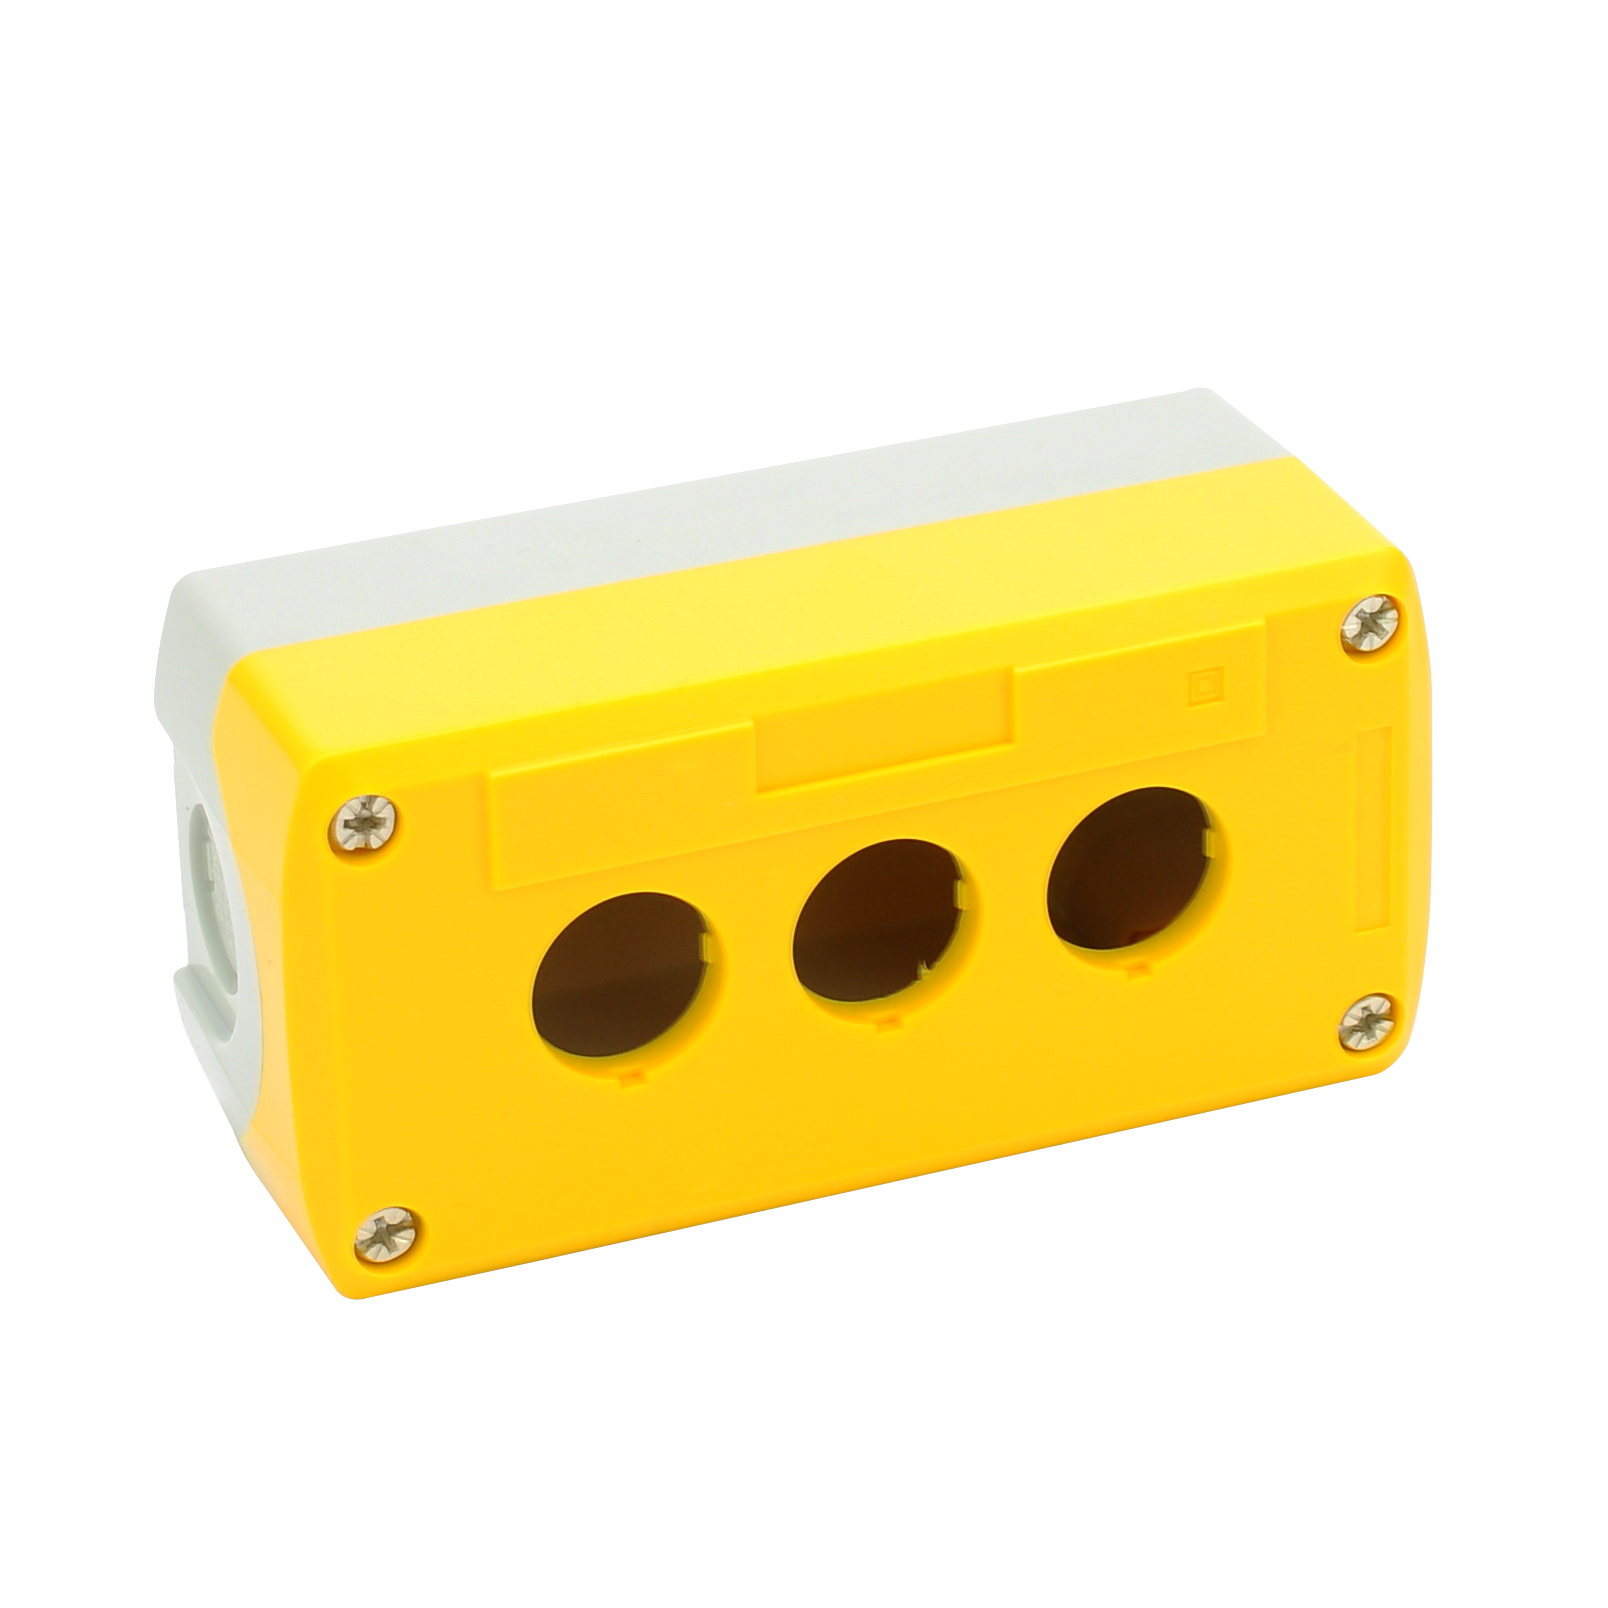 Plastic three-hole waterproof button box Emergency stop button switch control box